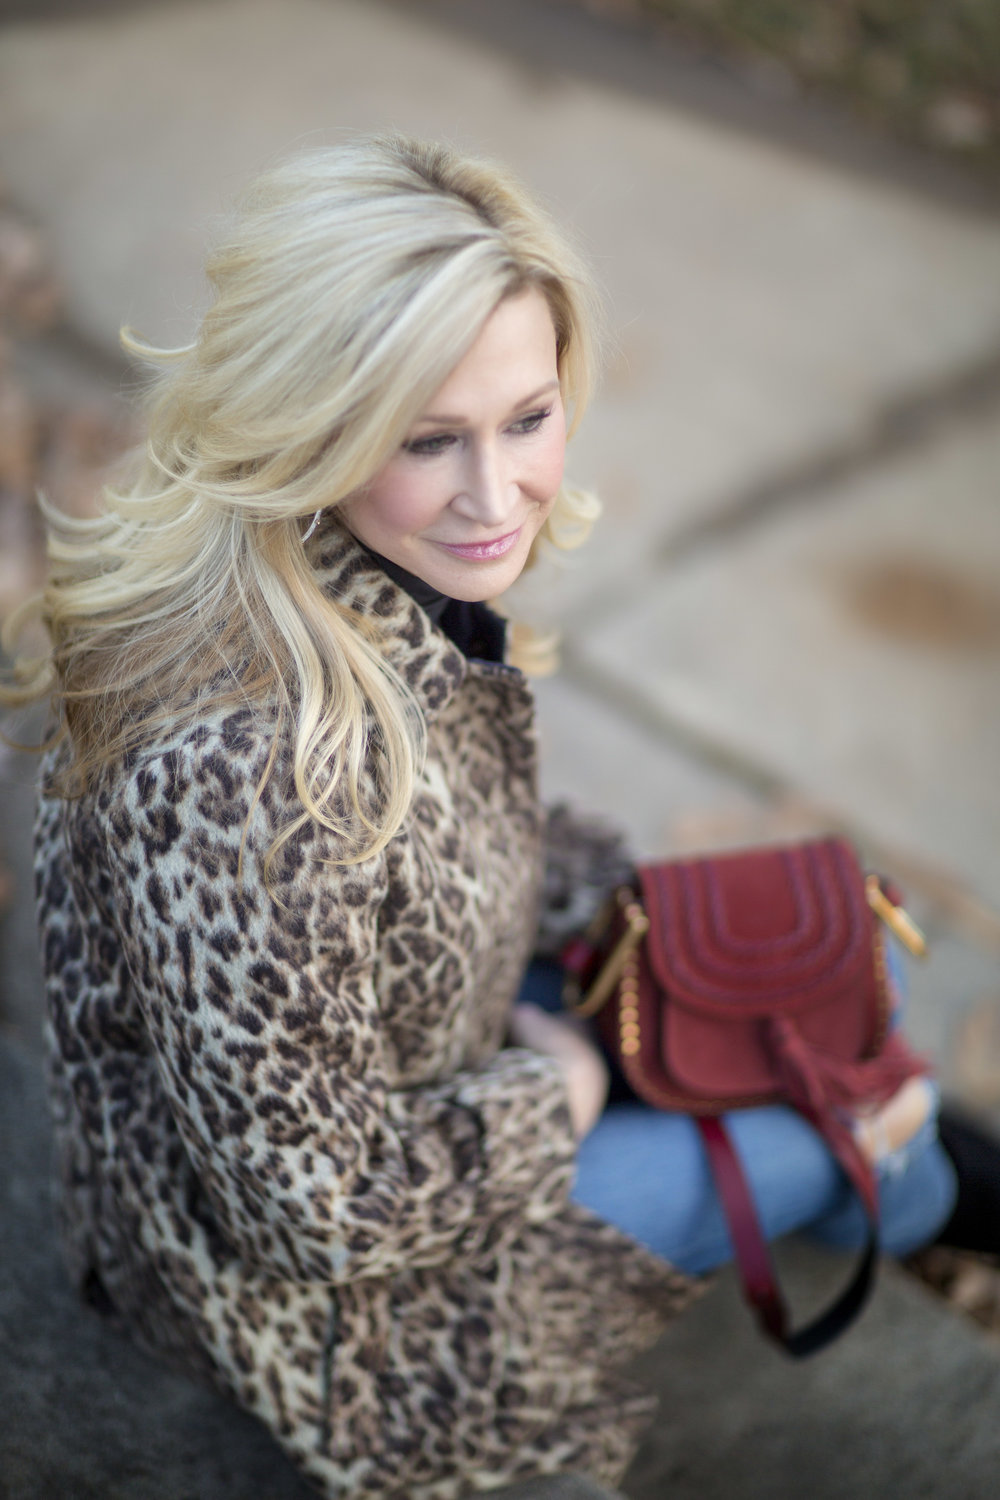 J Crew Leopard Coat & Chloe Bag